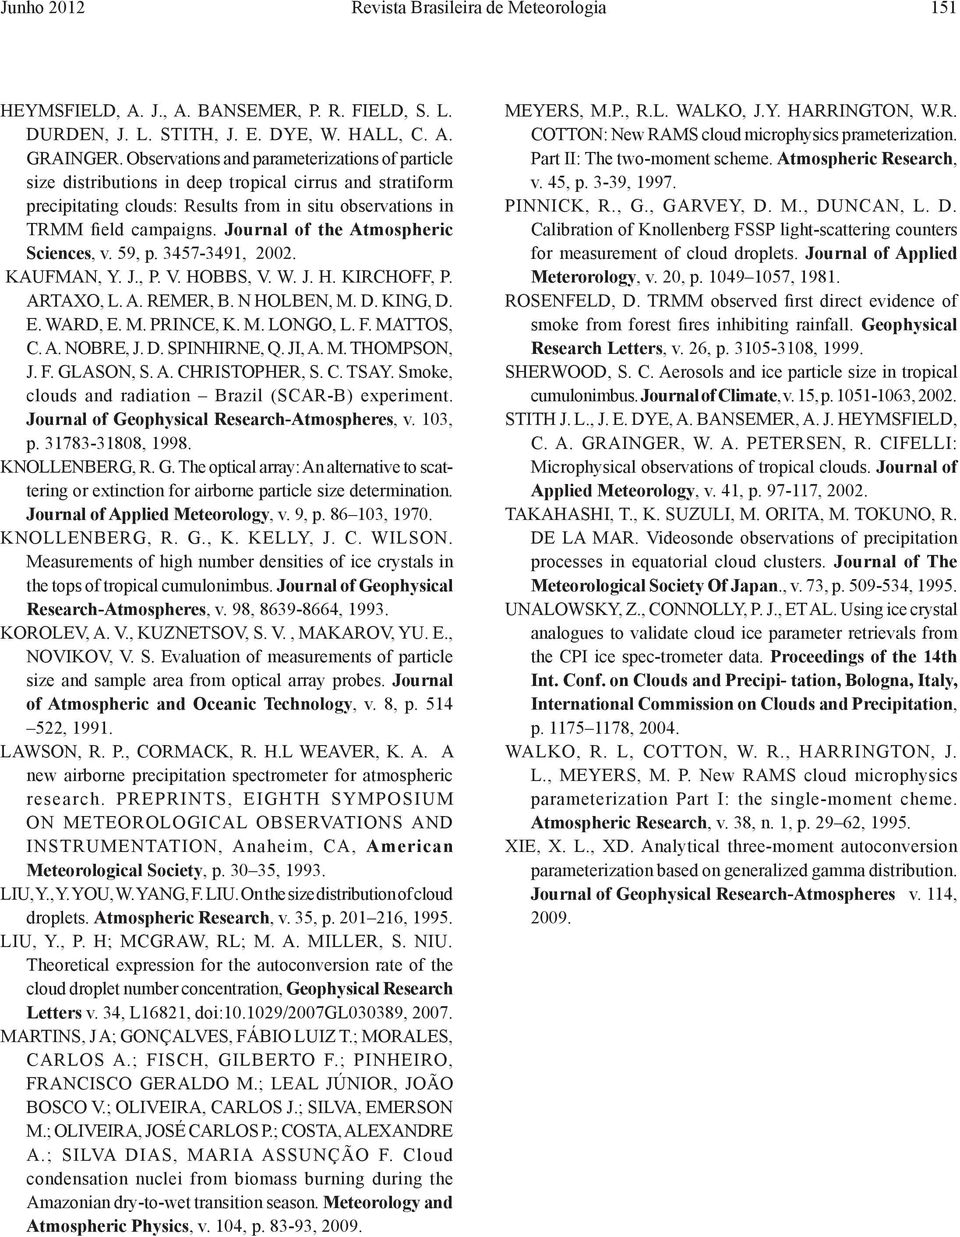 Journal of the Atmospheric Sciences, v. 59, p. 3457-3491, 2002. KAUFMAN, Y. J., P. V. HOBBS, V. W. J. H. KIRCHOFF, P. ARTAXO, L. A. REMER, B. N HOLBEN, M. D. KING, D. E. WARD, E. M. PRINCE, K. M. LONGO, L.